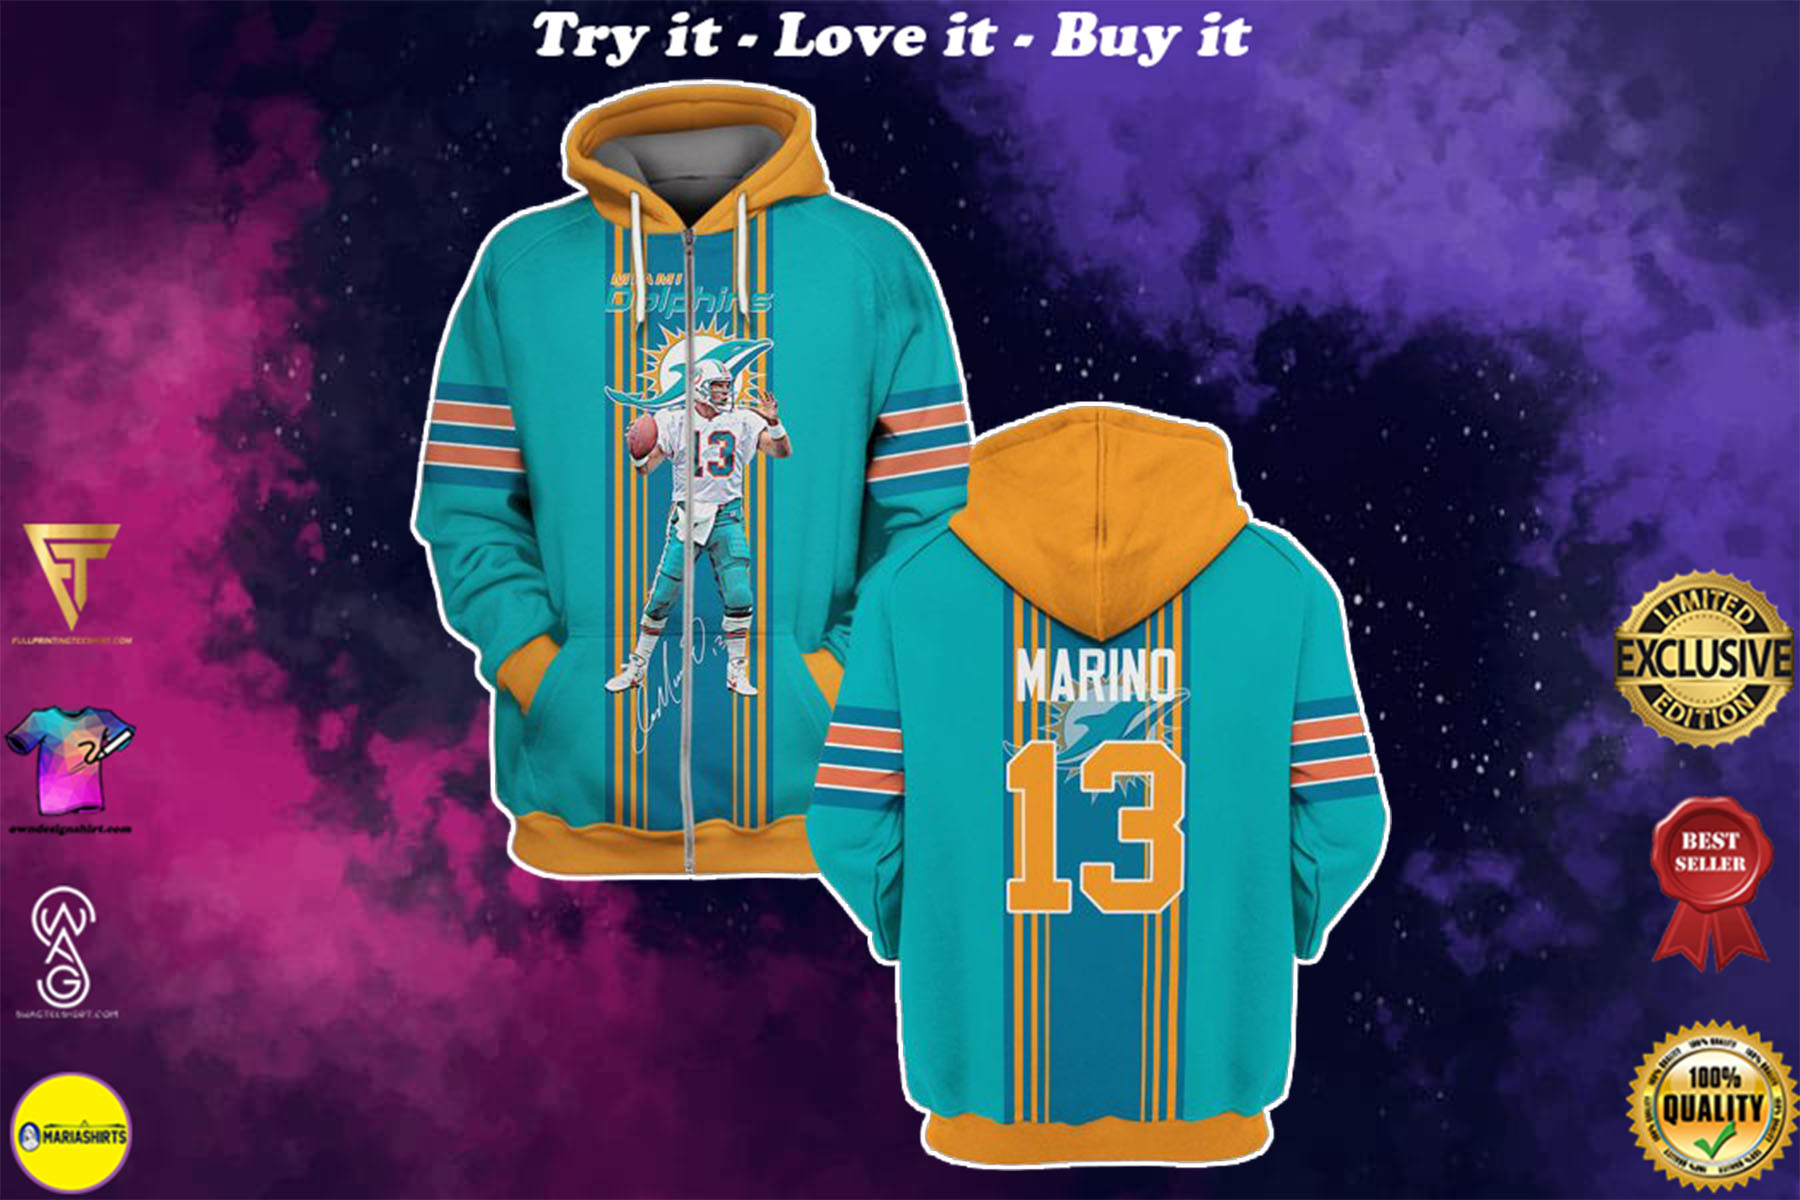 [special edition] miami dolphins dan marino 13 full over printed shirt - maria